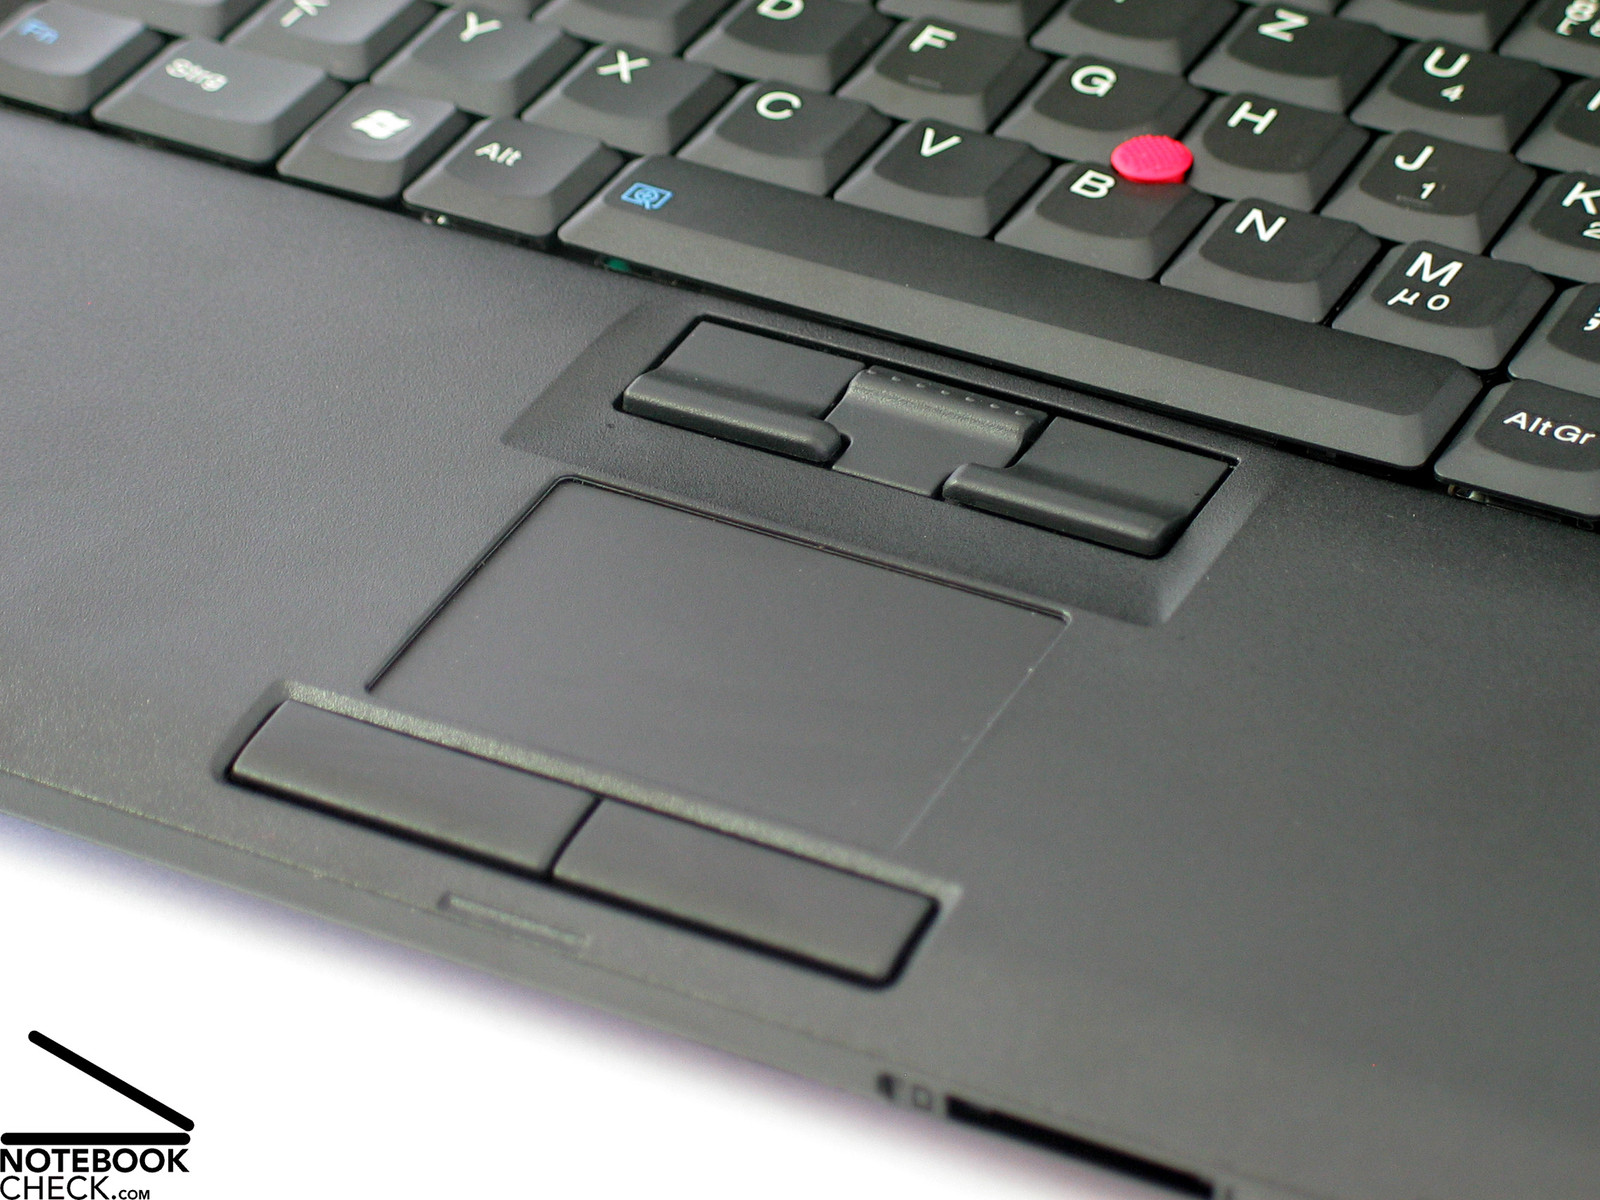 Review Lenovo Thinkpad R61 Notebook